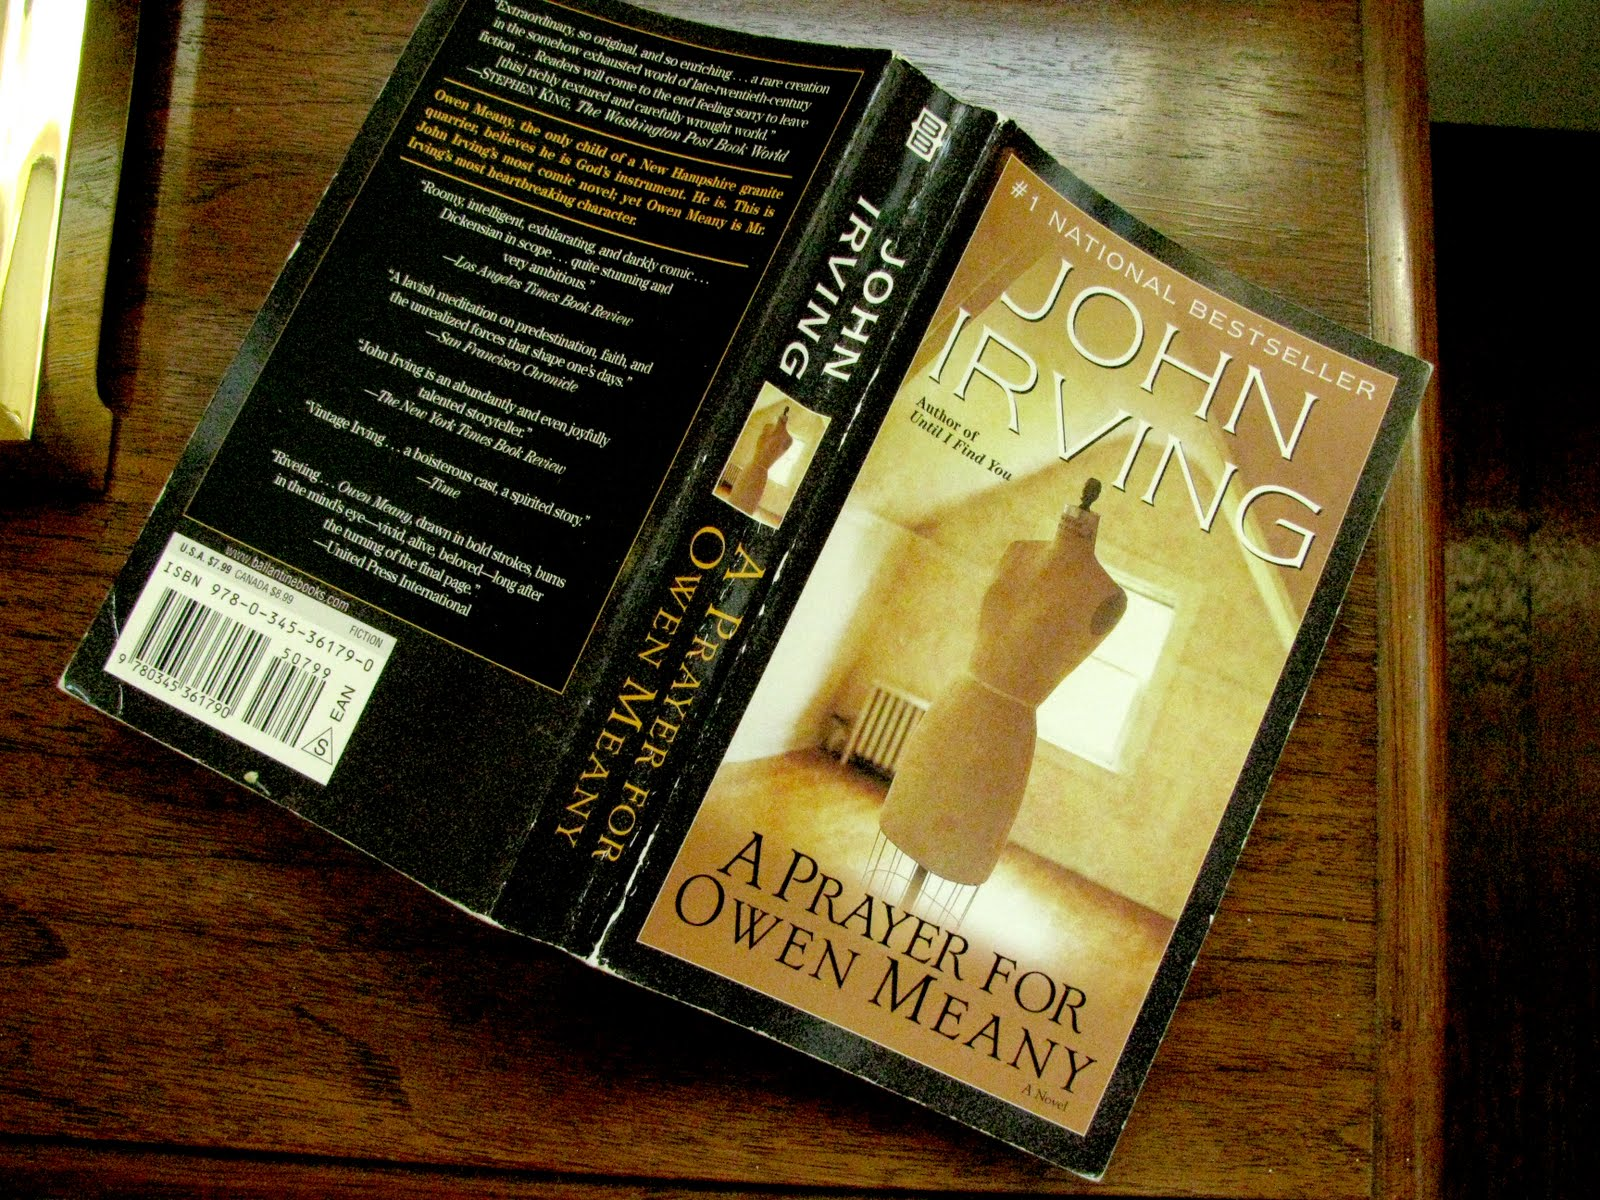 an analysis of owen meany the protagonist in the novel a prayer for owen meany by john irvin Owen meany by john irvin, a prayer for owen meany has 259929 ratings and 11992 reviews nick said: i m s hort on time for this review, but man, this is the closest.